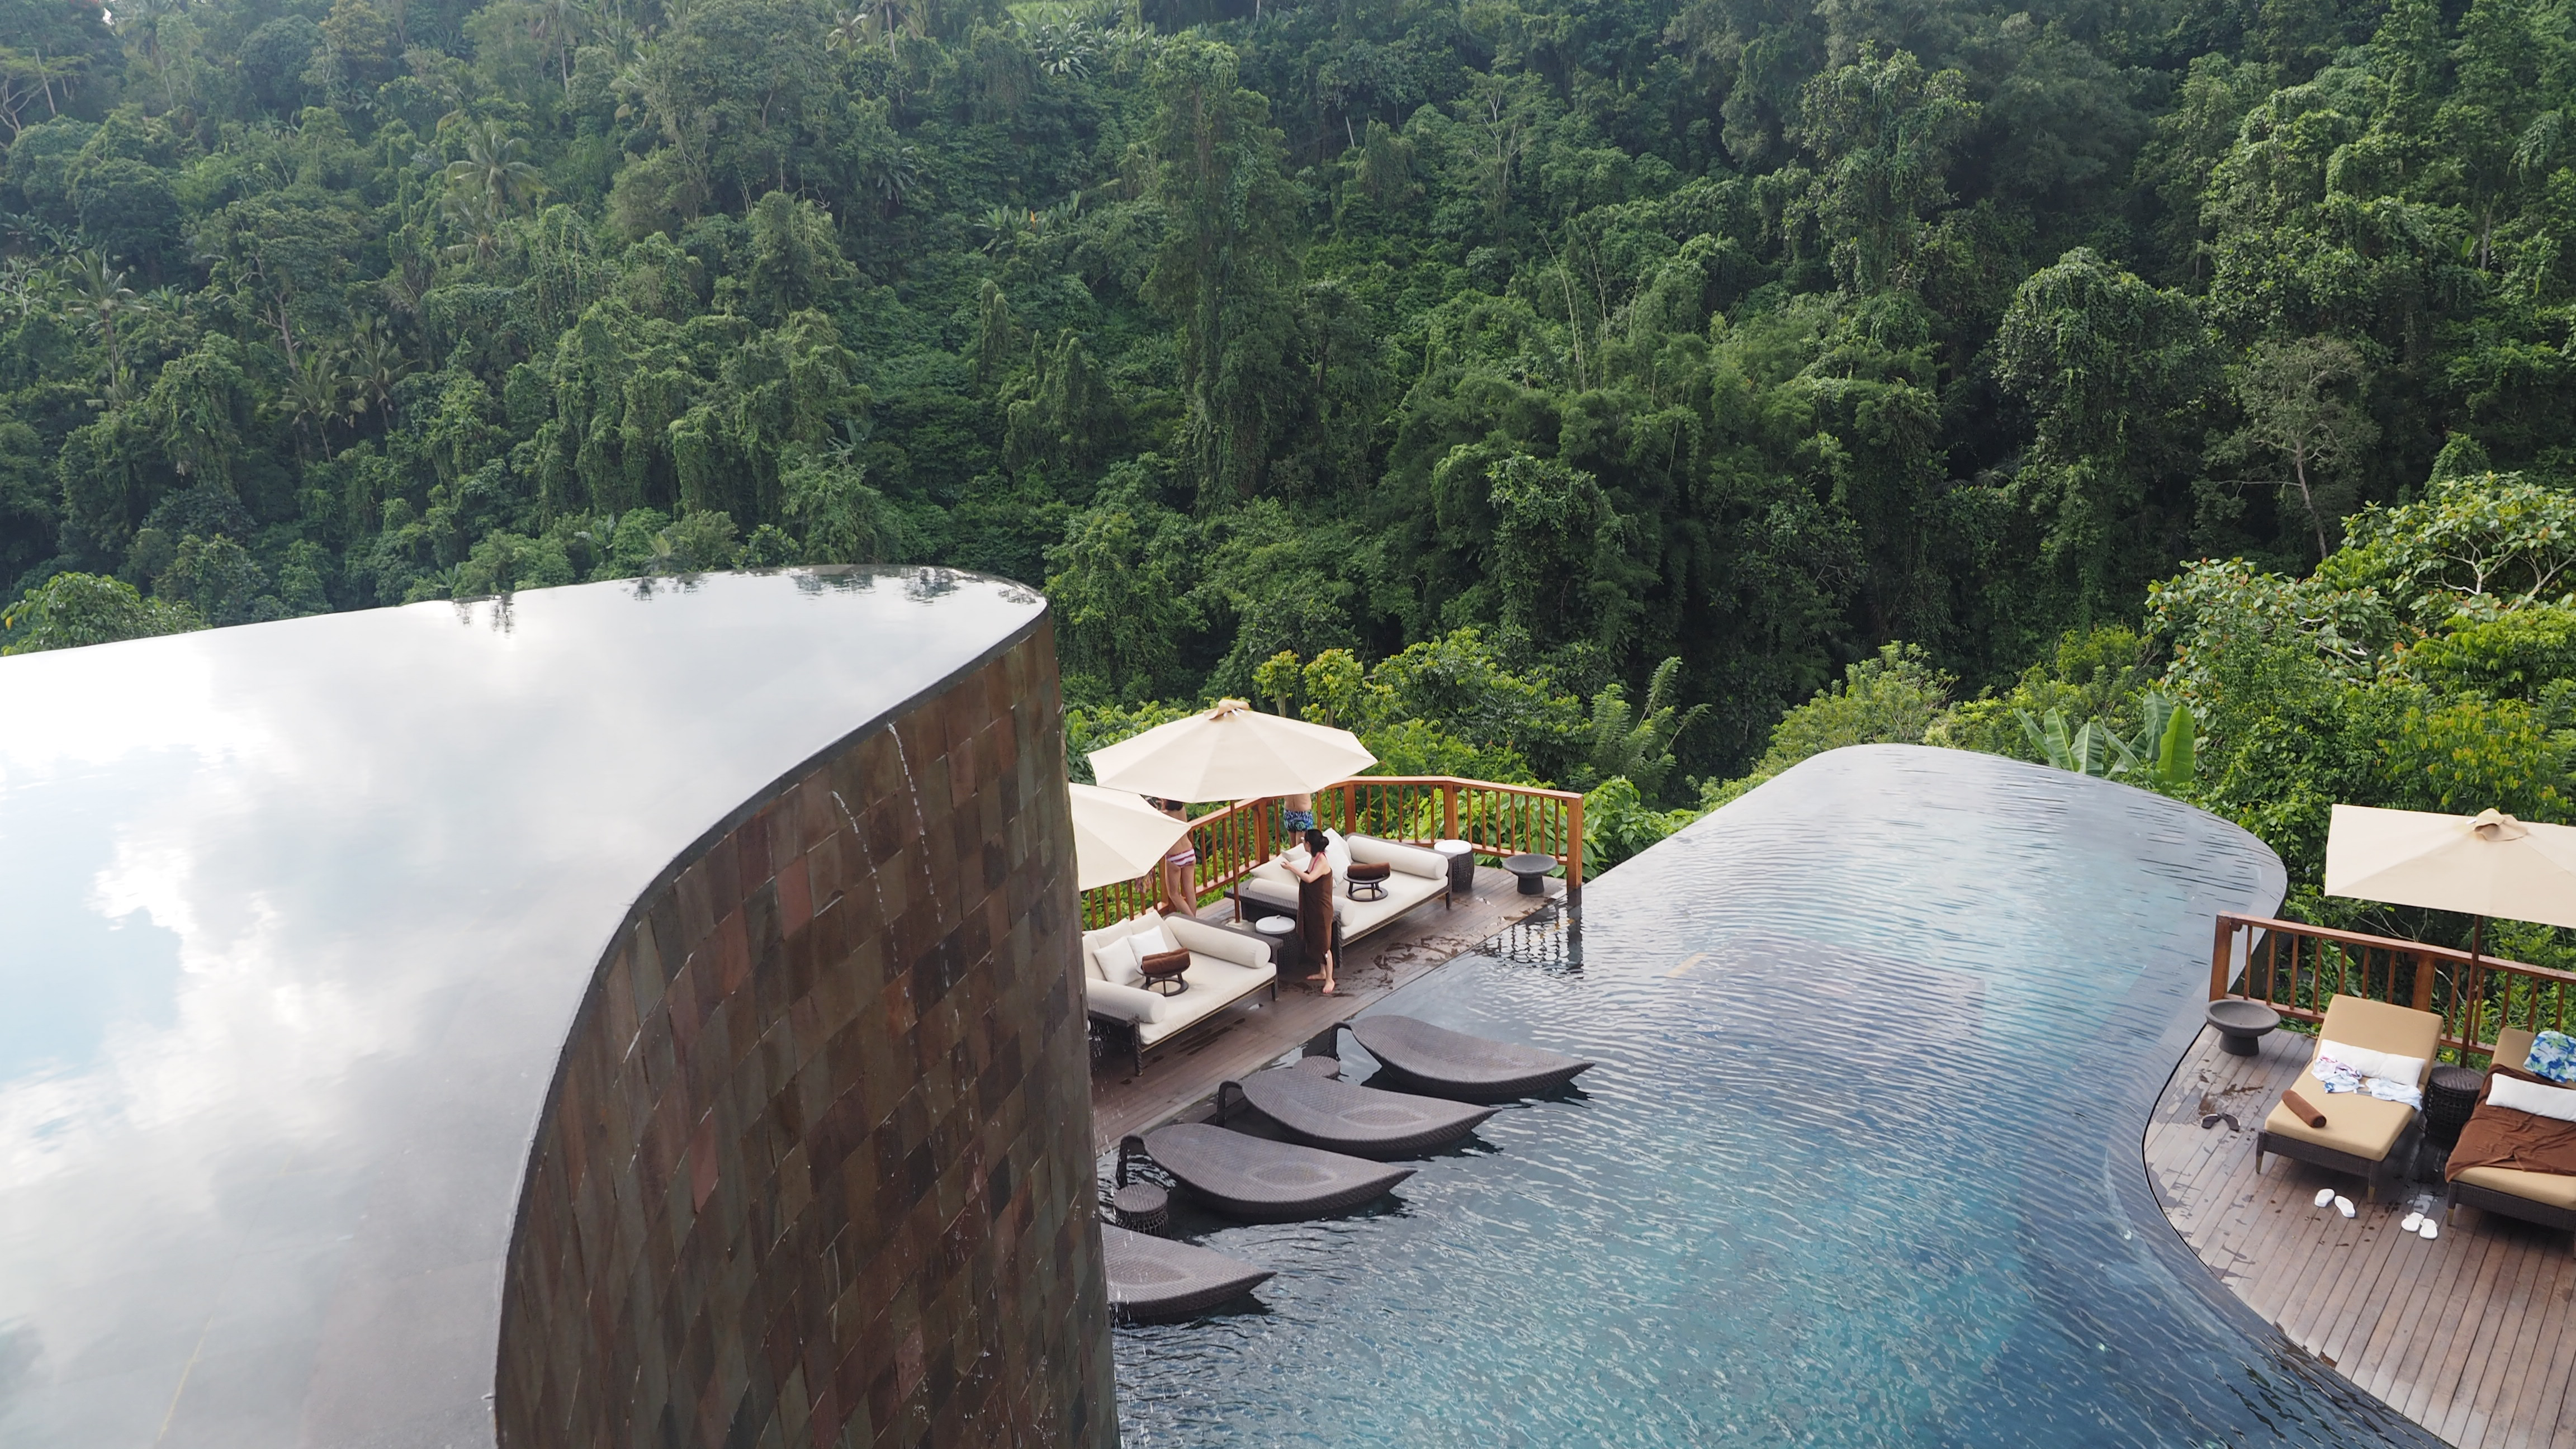 Jungle Relaxation at the Hanging Gardens of Bali – TRAVELLING THE ...